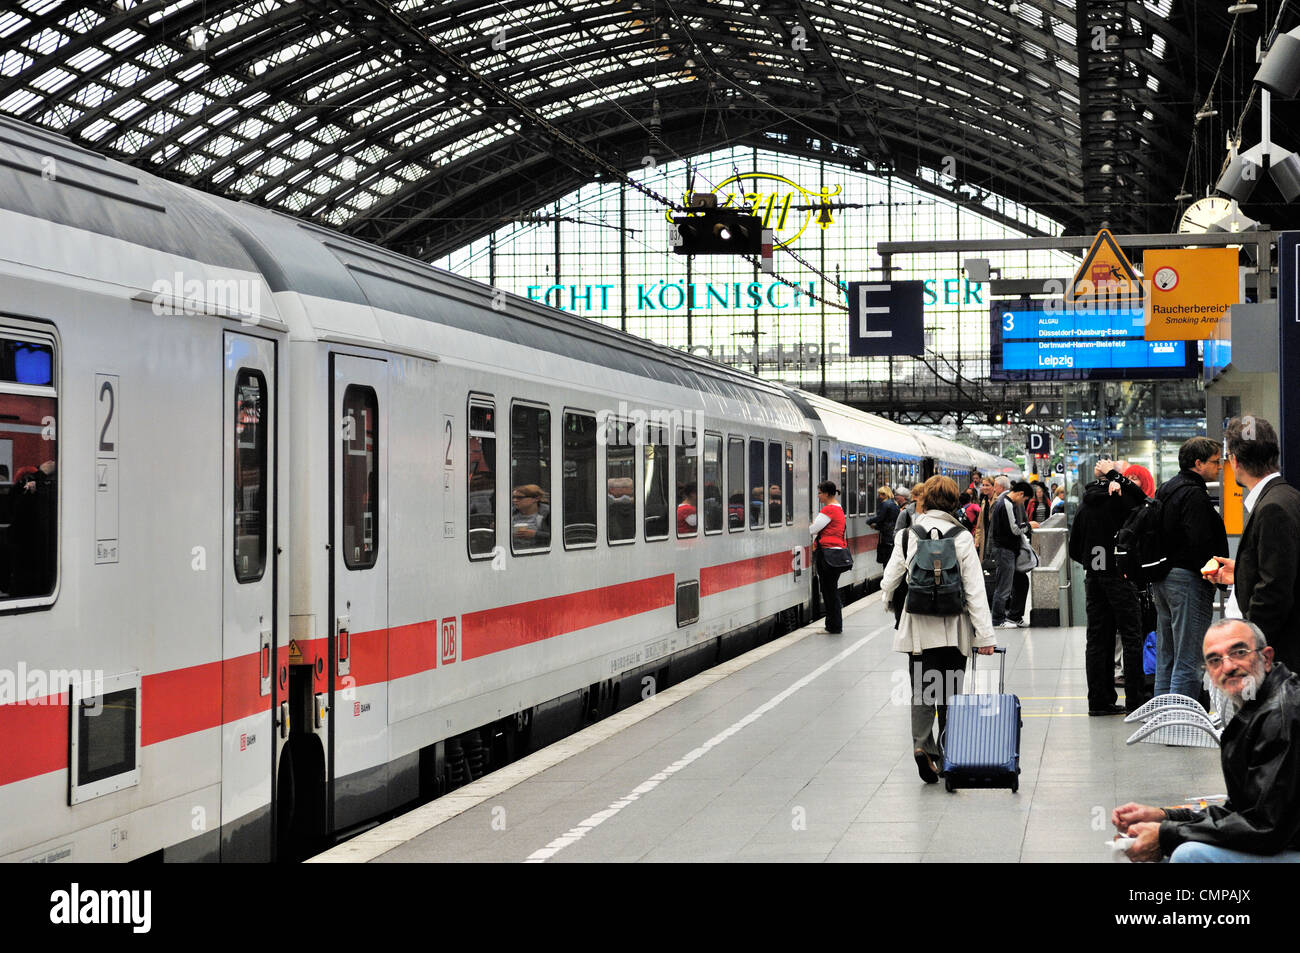 deutsche bahn db high speed german intercity passenger train standing stock photo royalty free. Black Bedroom Furniture Sets. Home Design Ideas